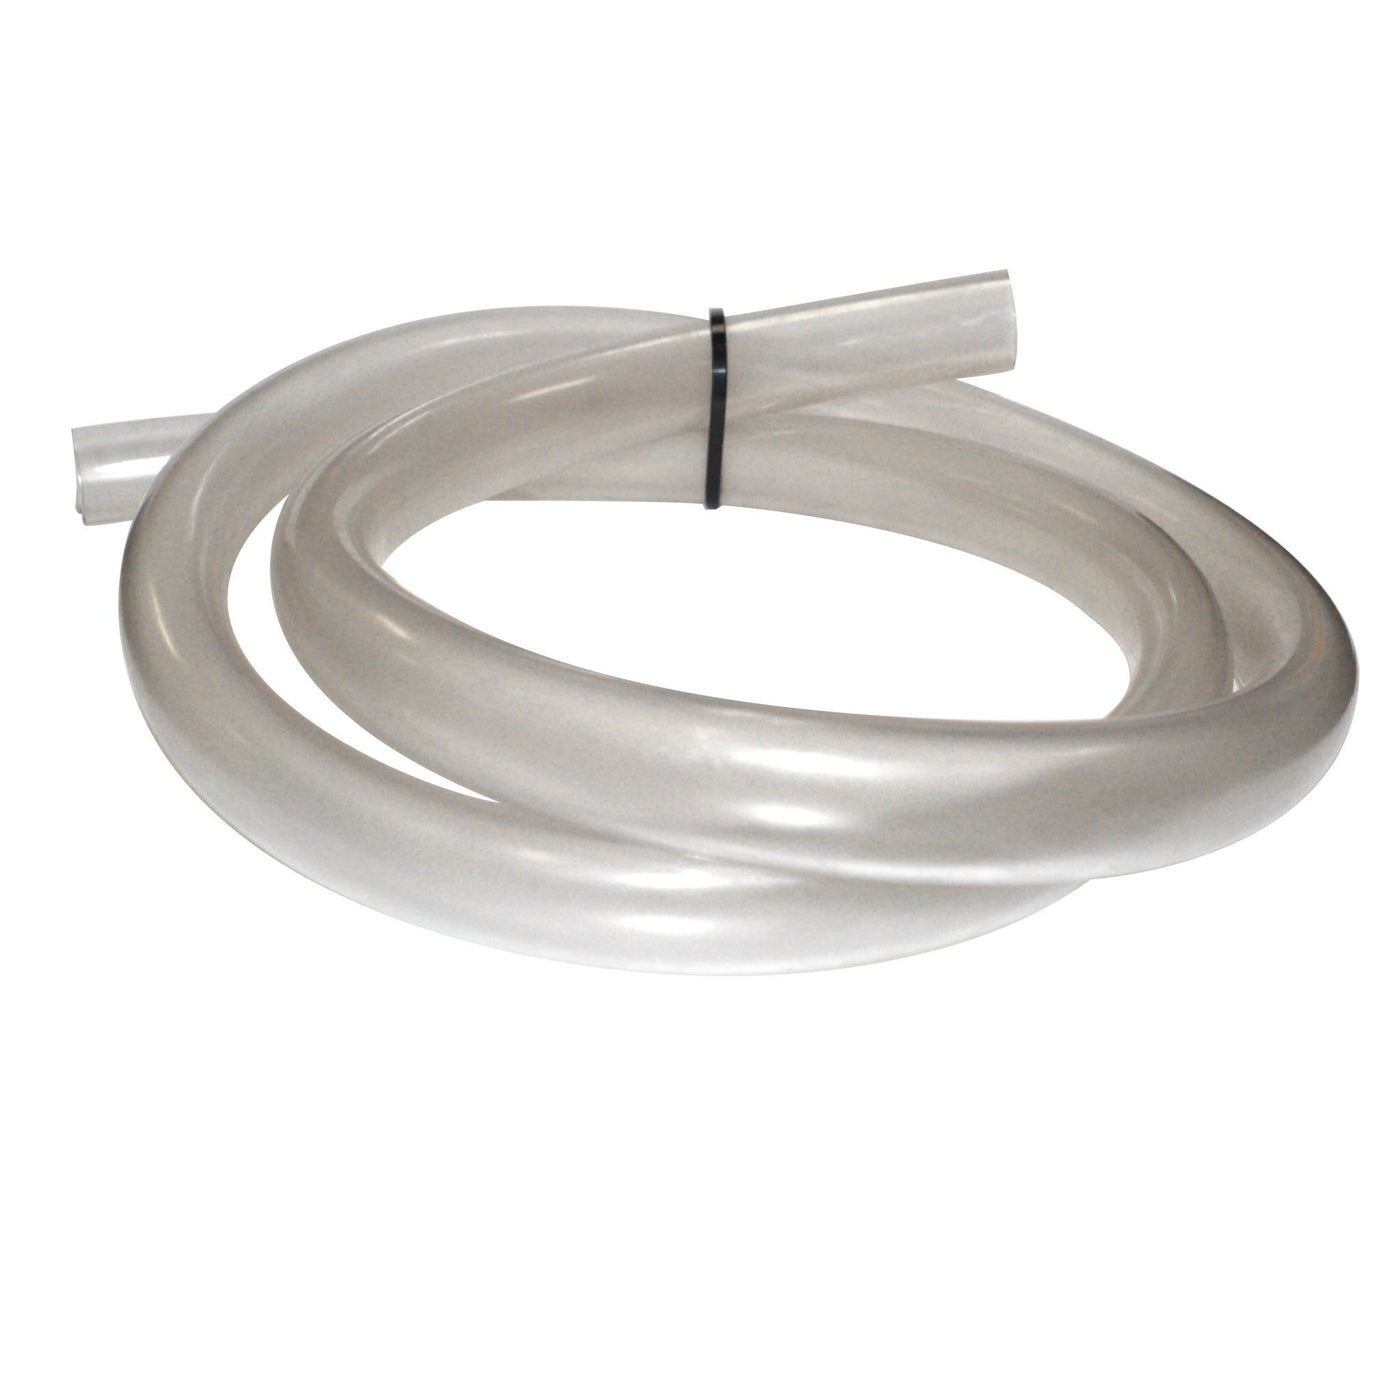 Splash Tubing, 3ft-Sink Station-Mortech Manufacturing Company Inc. Quality Stainless Steel Autopsy, Morgue, Funeral Home, Necropsy, Veterinary / Anatomy, Dissection Equipment and Accessories